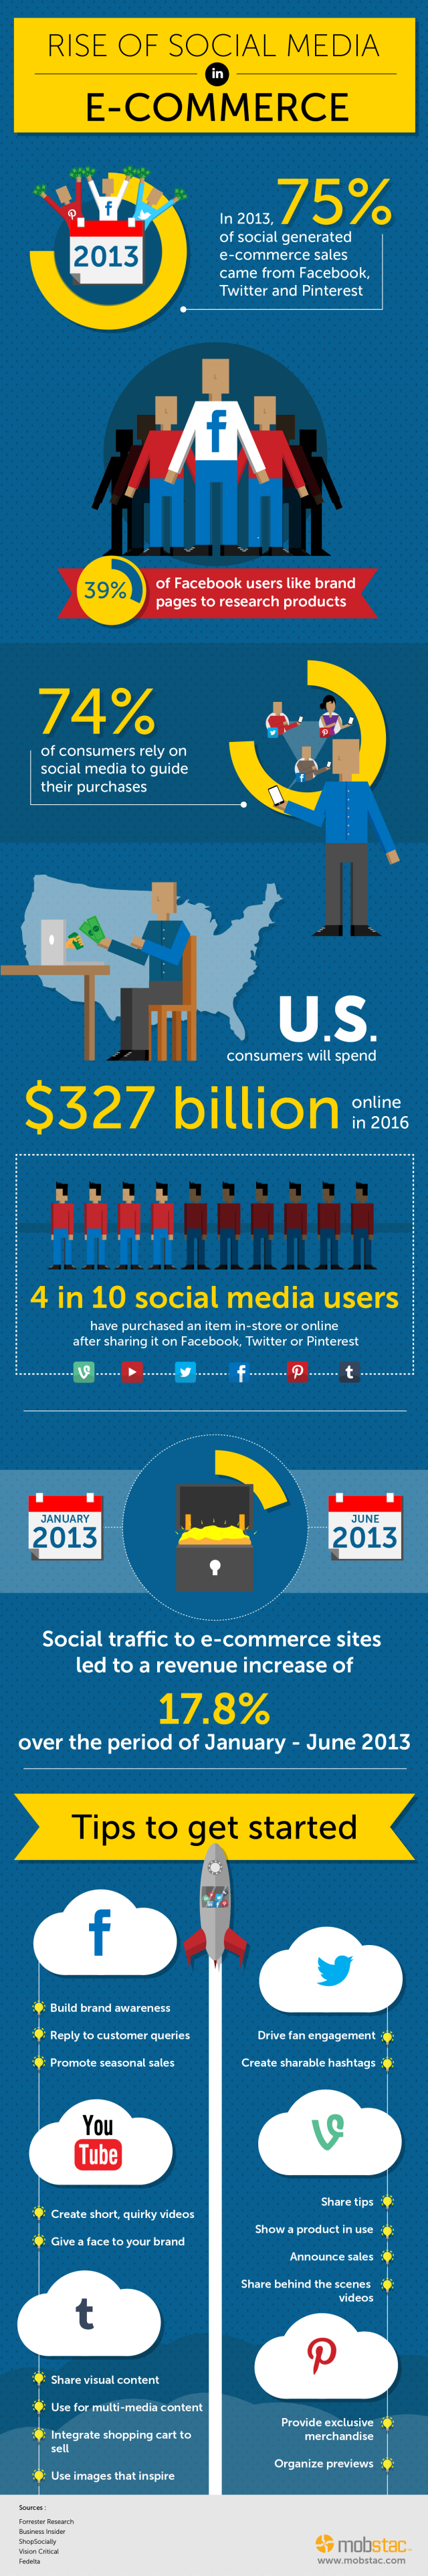 rise-of-social-media-in-ecommerce-mobstac-infographic